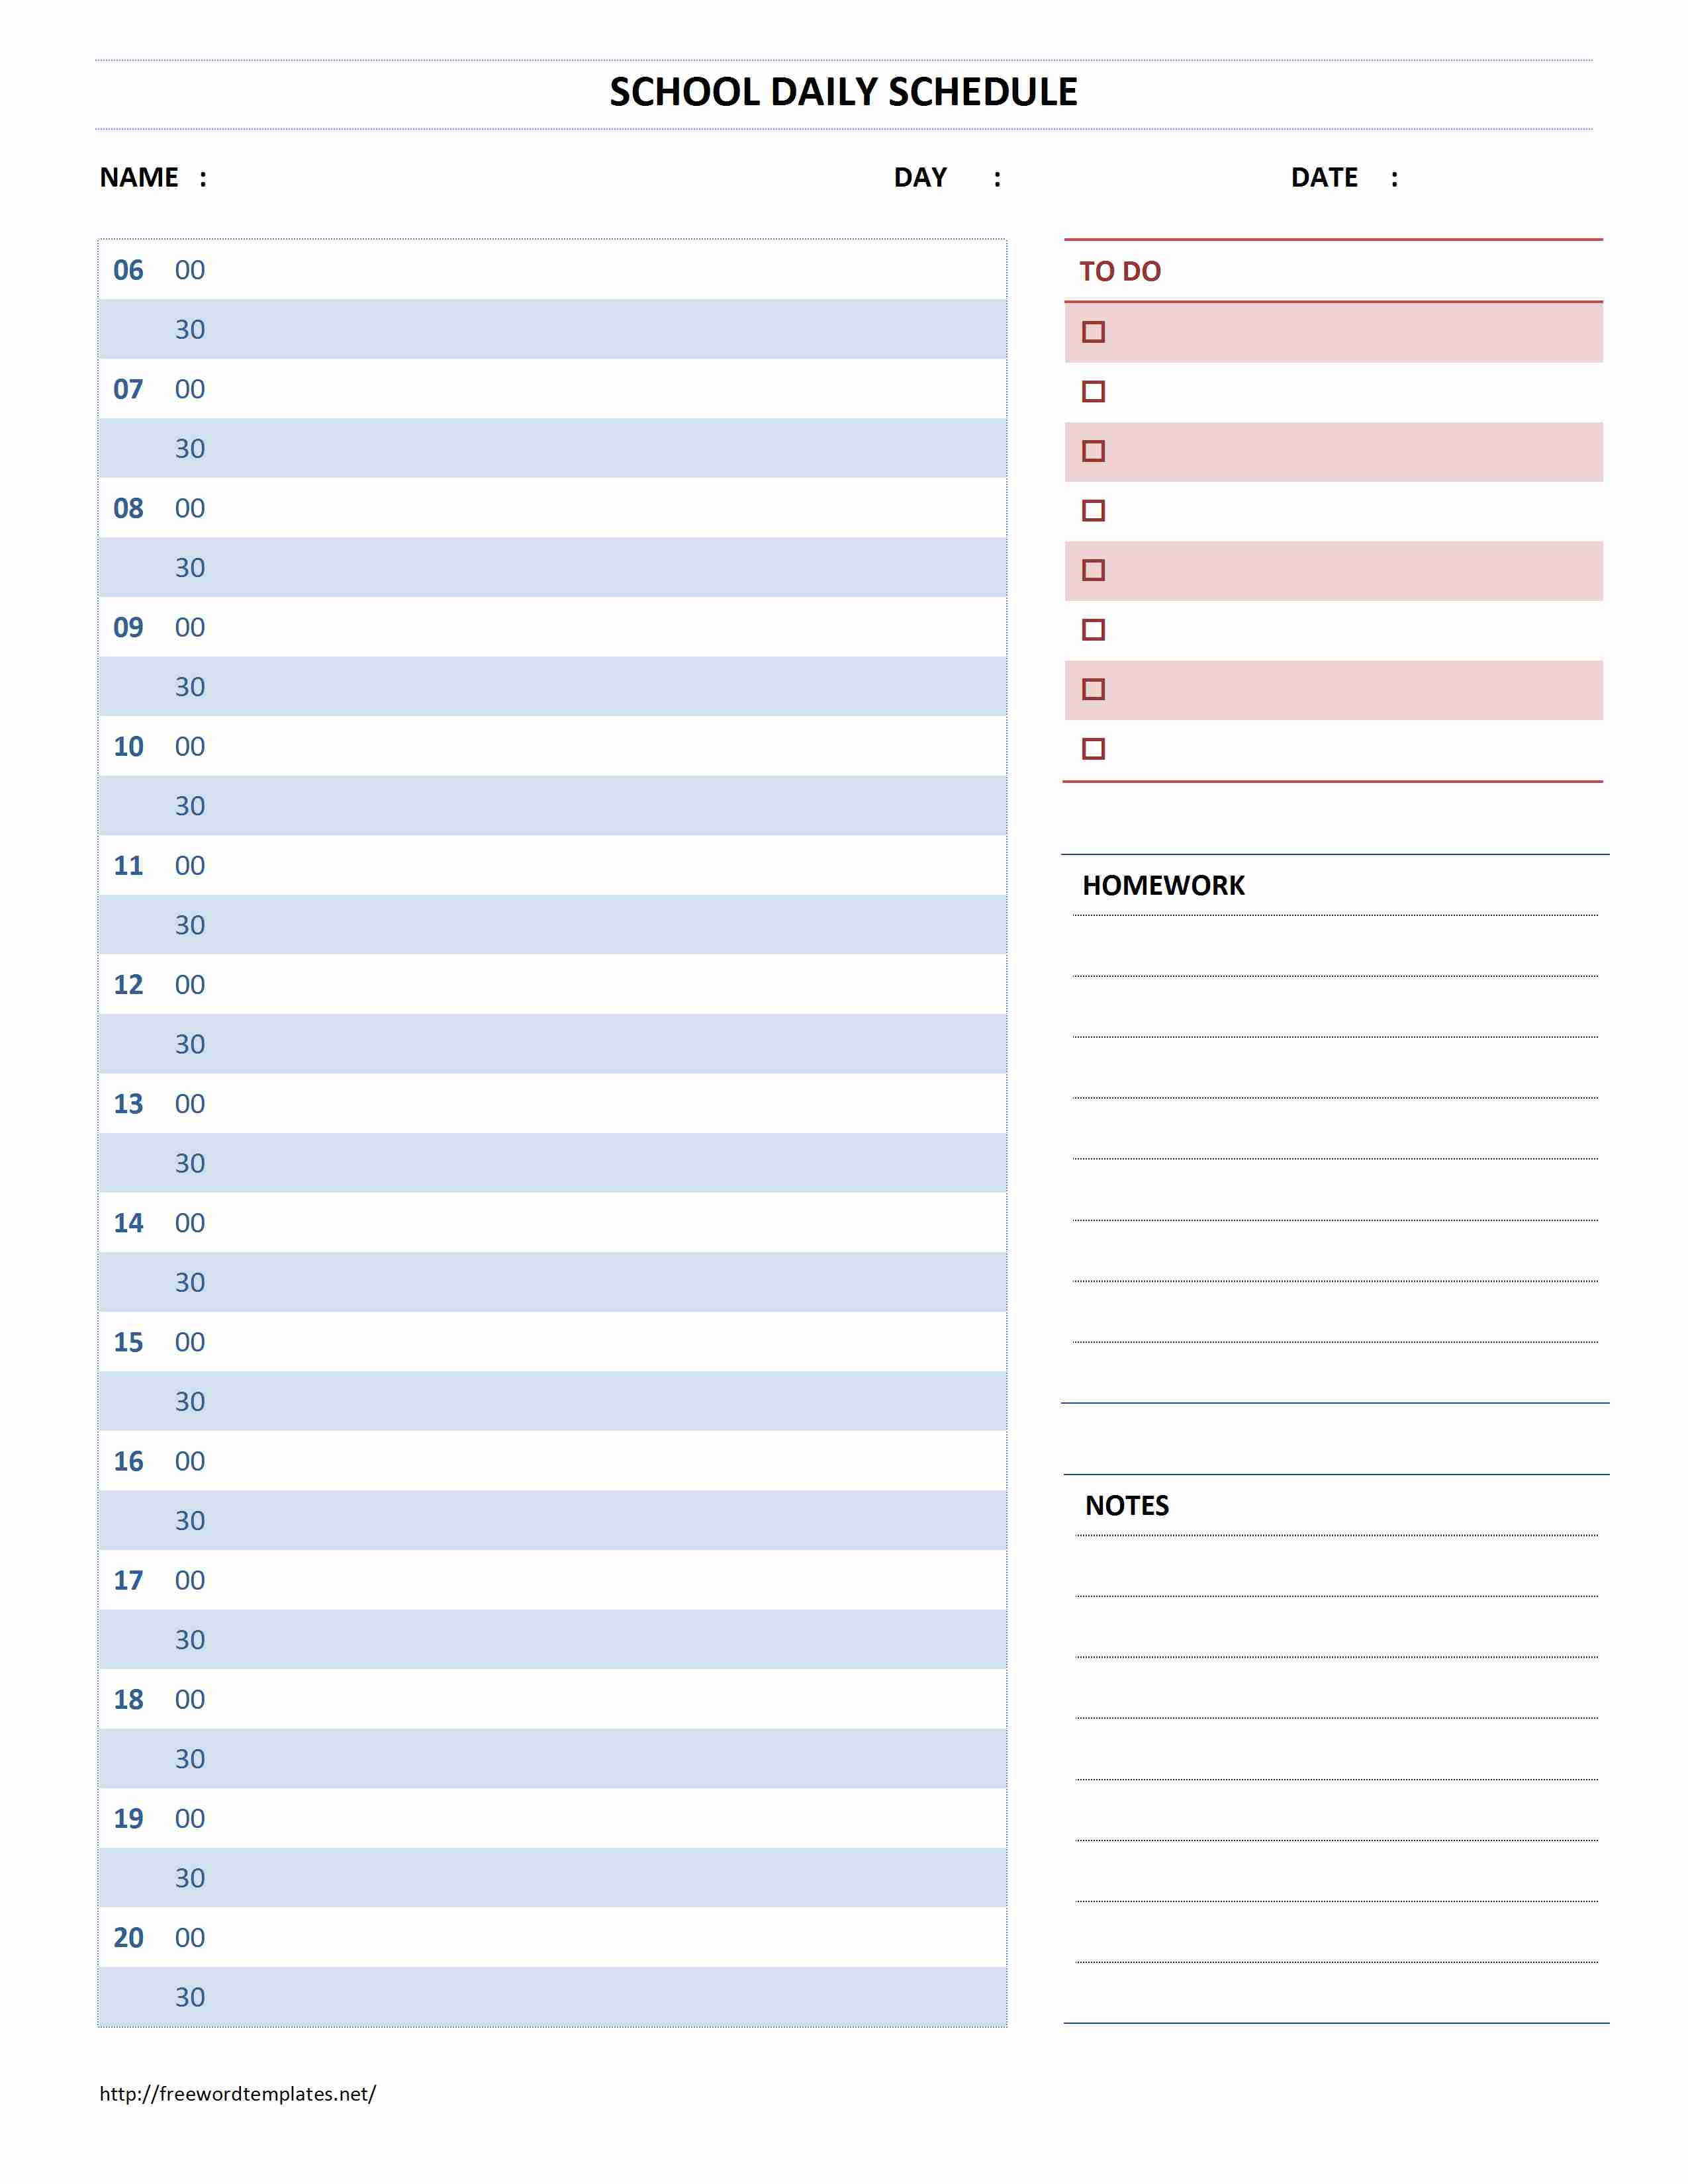 Printable Microsoft Word Daily Hourly Planner Template | Ready